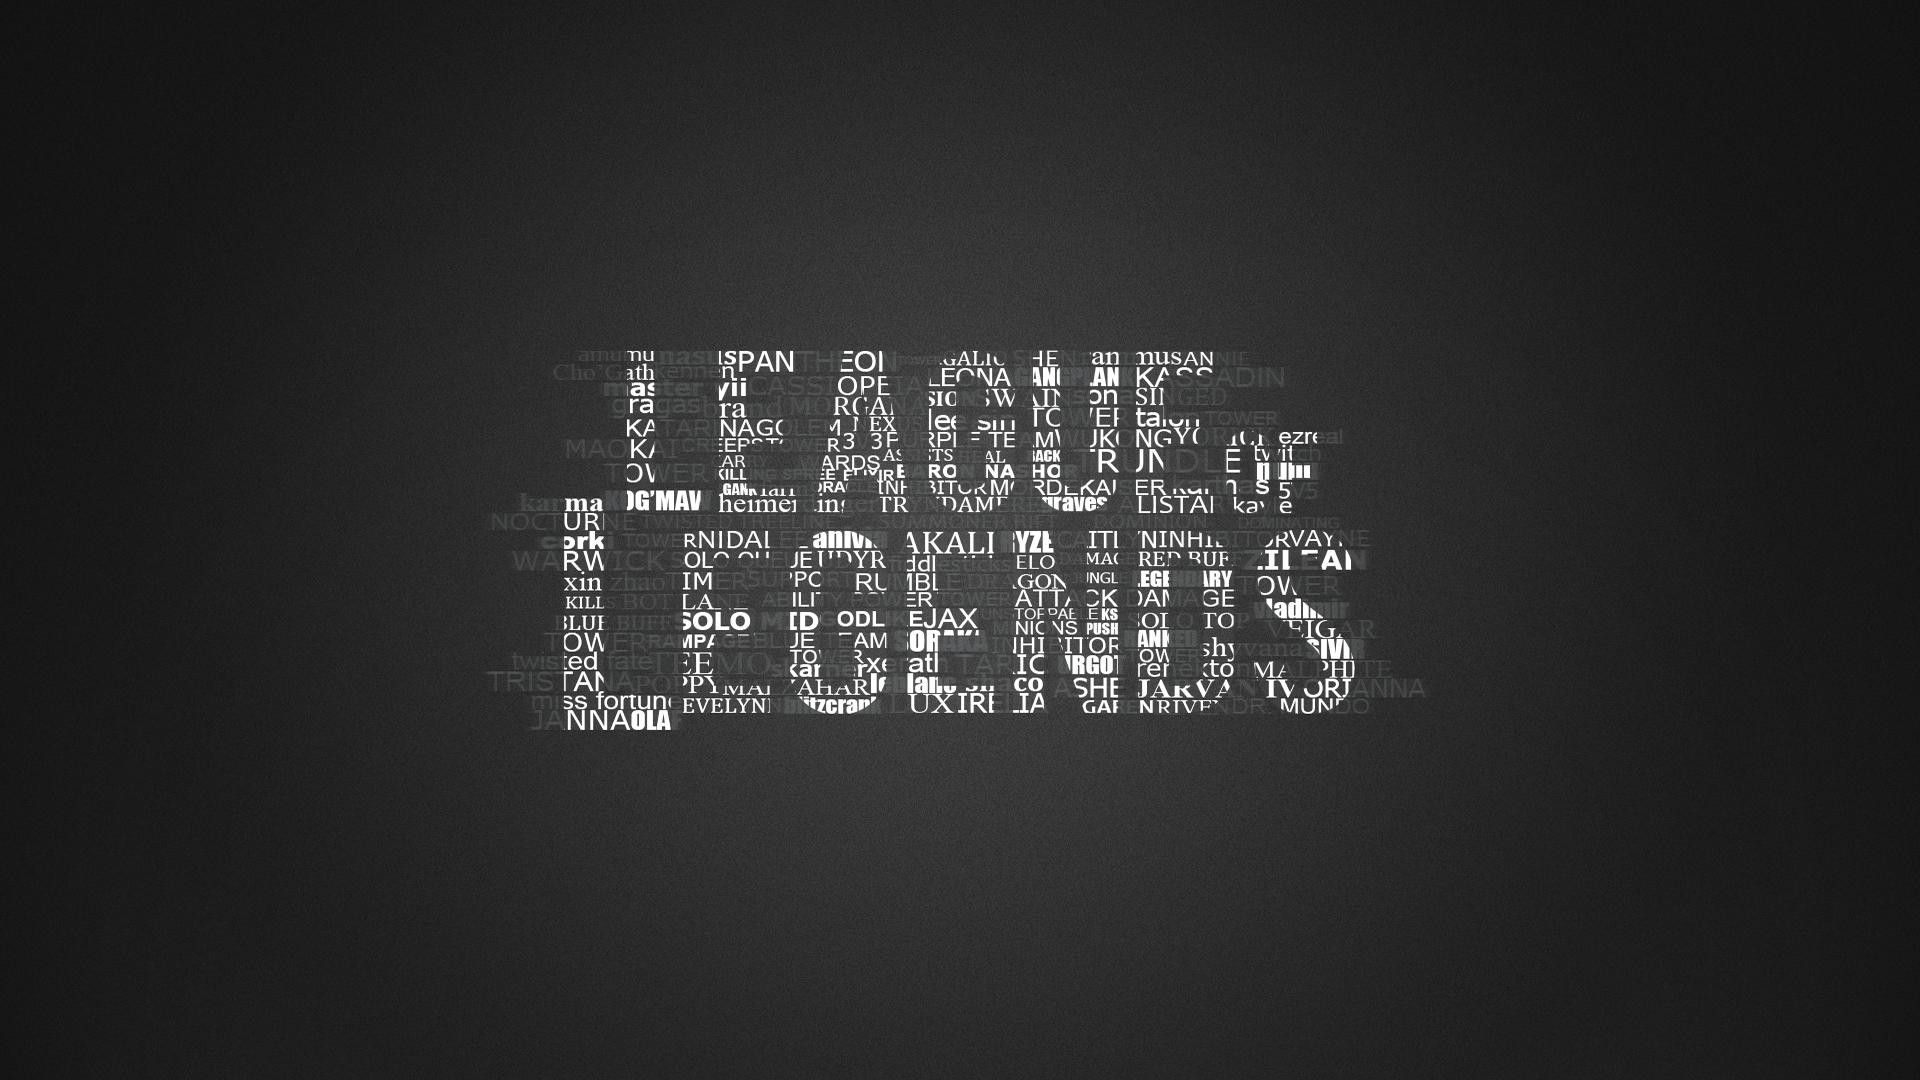 Pics photos pictures league of legends heroes wallpaper hd 1080p jpg - League Of Legends Logo In Typography Wallpaper Theme I Love This